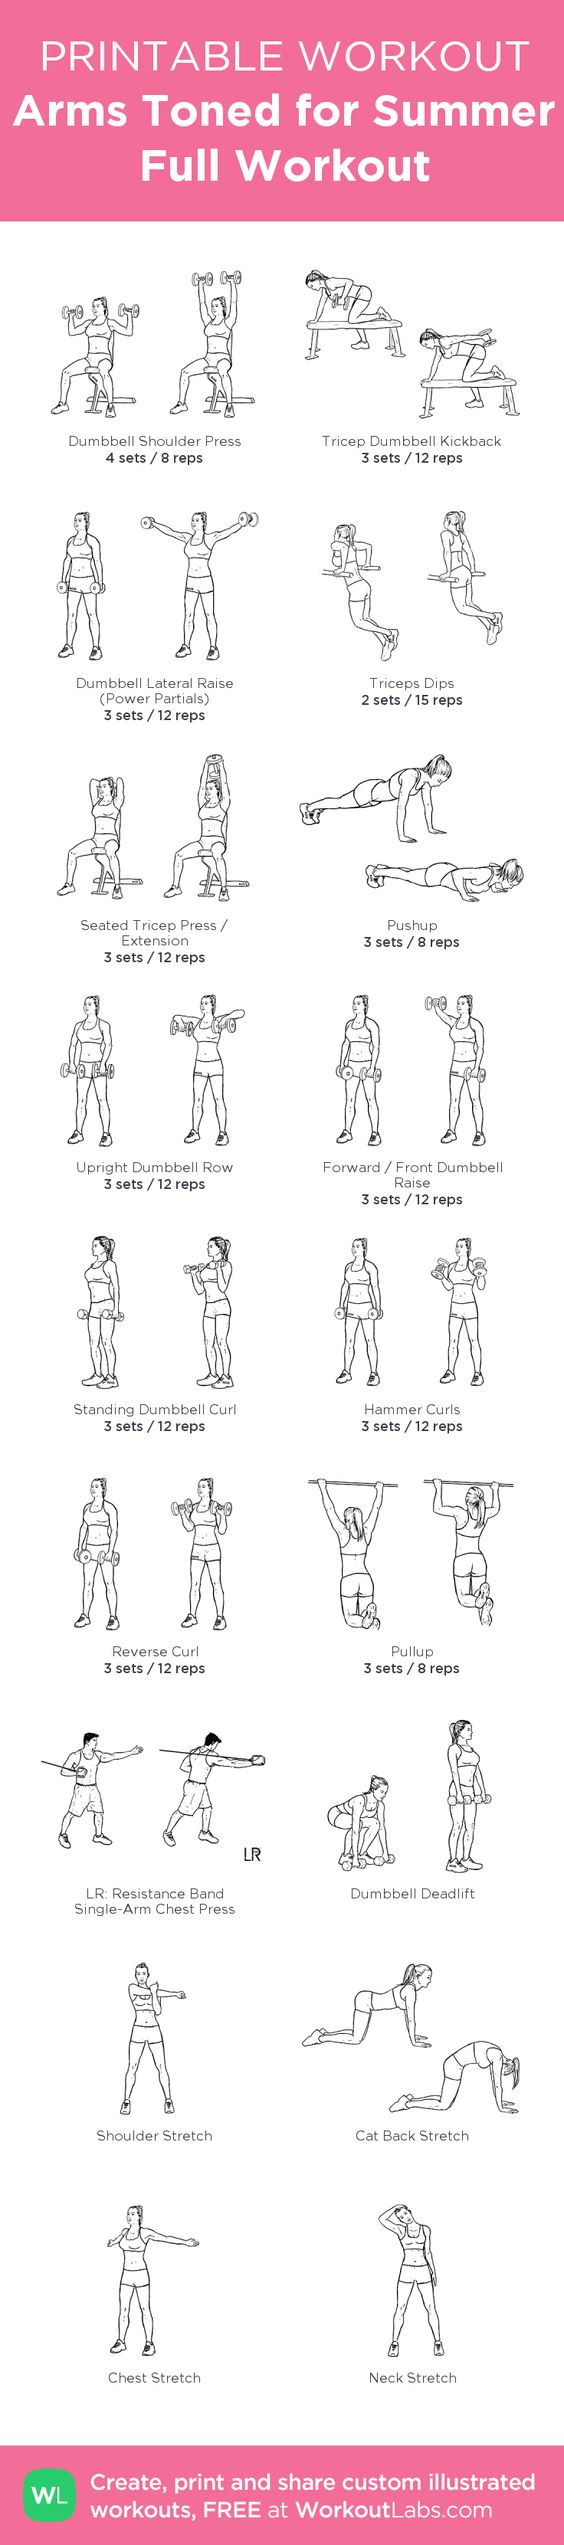 Tricep and Bicep workout - 6 Triceps shoulders workouts, followed by 6 Biceps Back workouts, this makes a full upper body workout routines, at home or at the Gym ! my custom printable workout by @WorkoutLabs #workoutlabs #customworkout